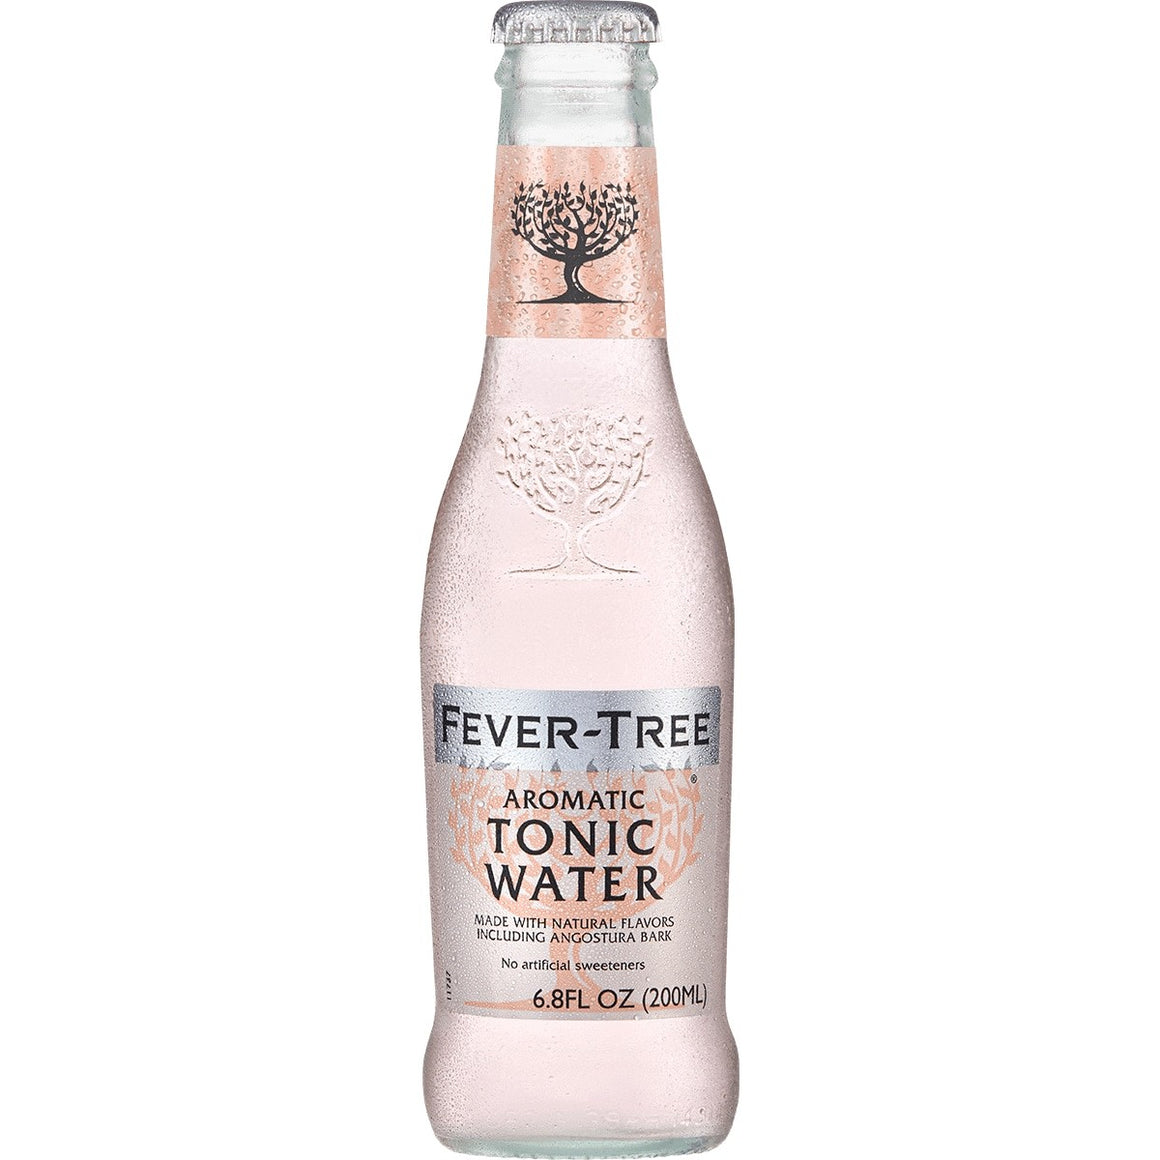 FEVER-TREE AROMATIC TONIC WATER 200ml - Premier Cru Retail Stores